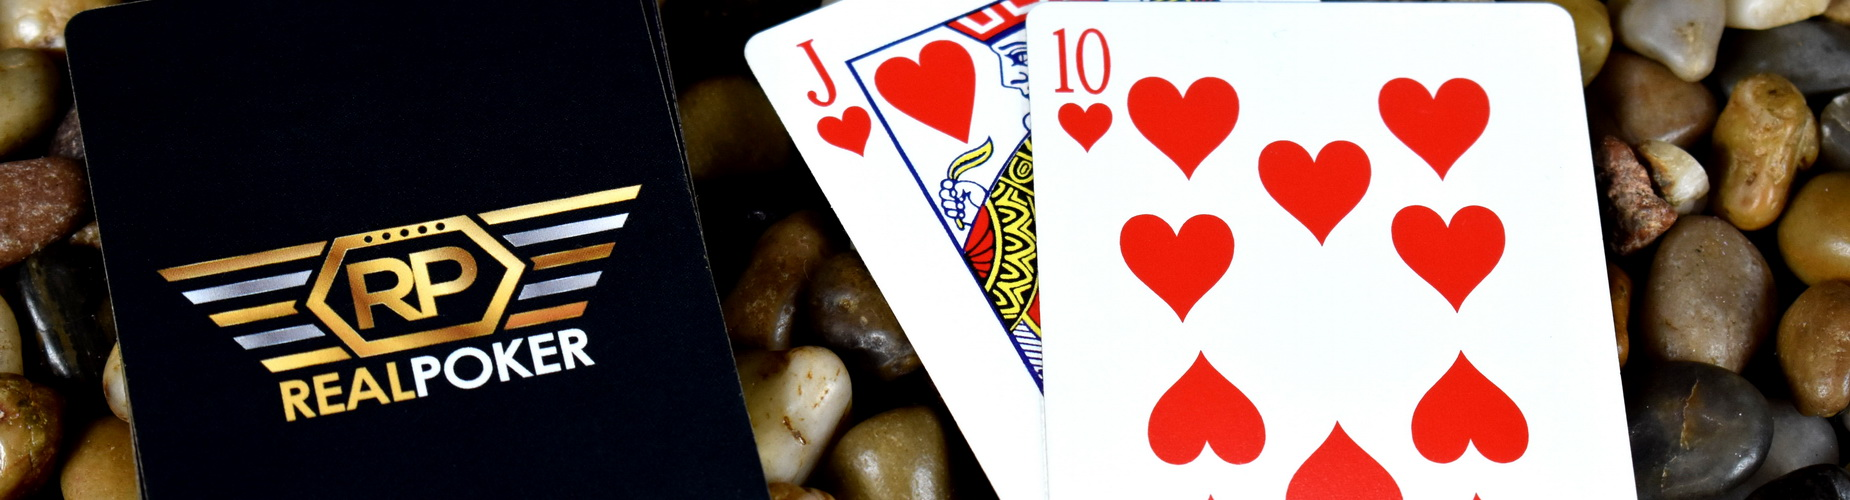 Does bluffing ever really work in poker online?